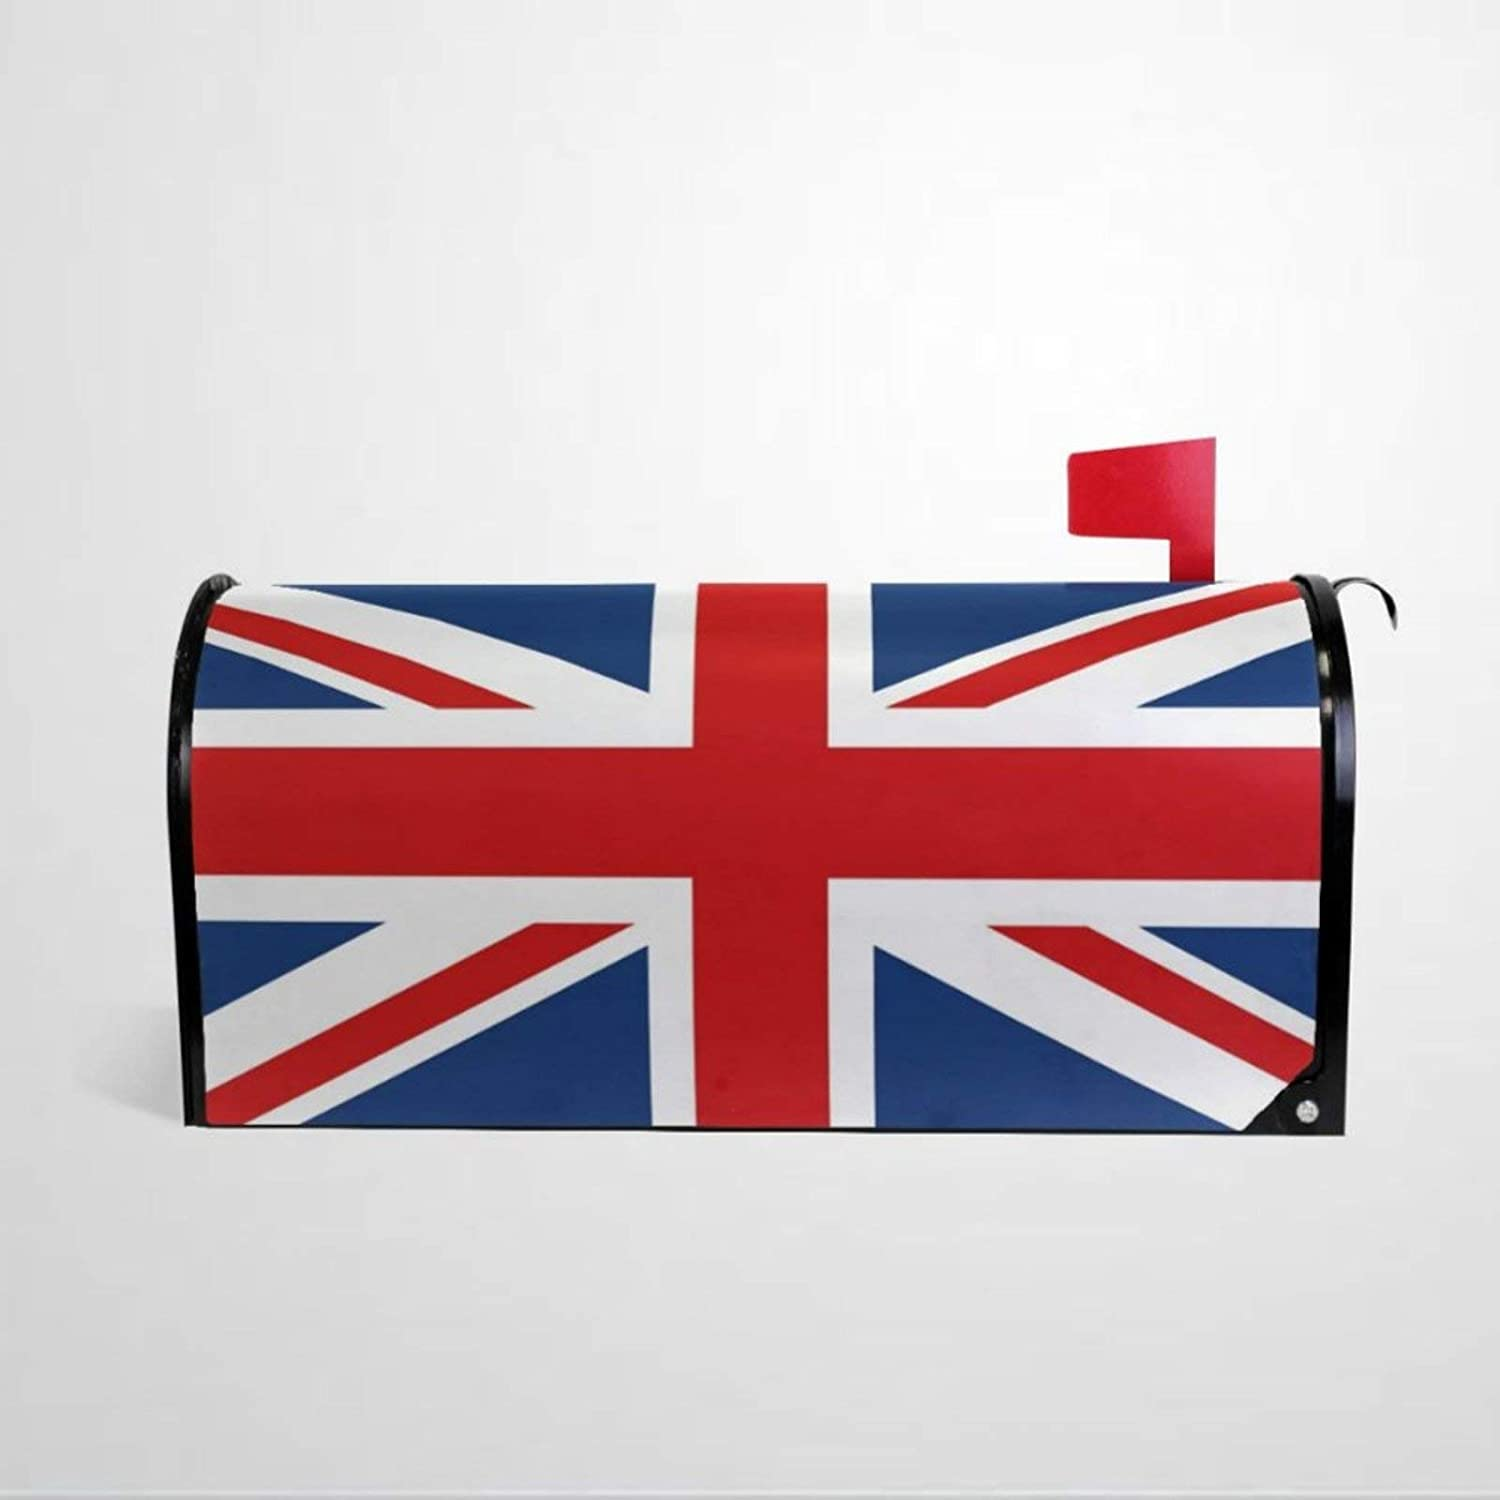 BYRON HOYLE UK British Flag Mailbox Covers Magnetic Mailbox Wraps Post Letter Box Cover Home Garden Yard Outdoor Decor